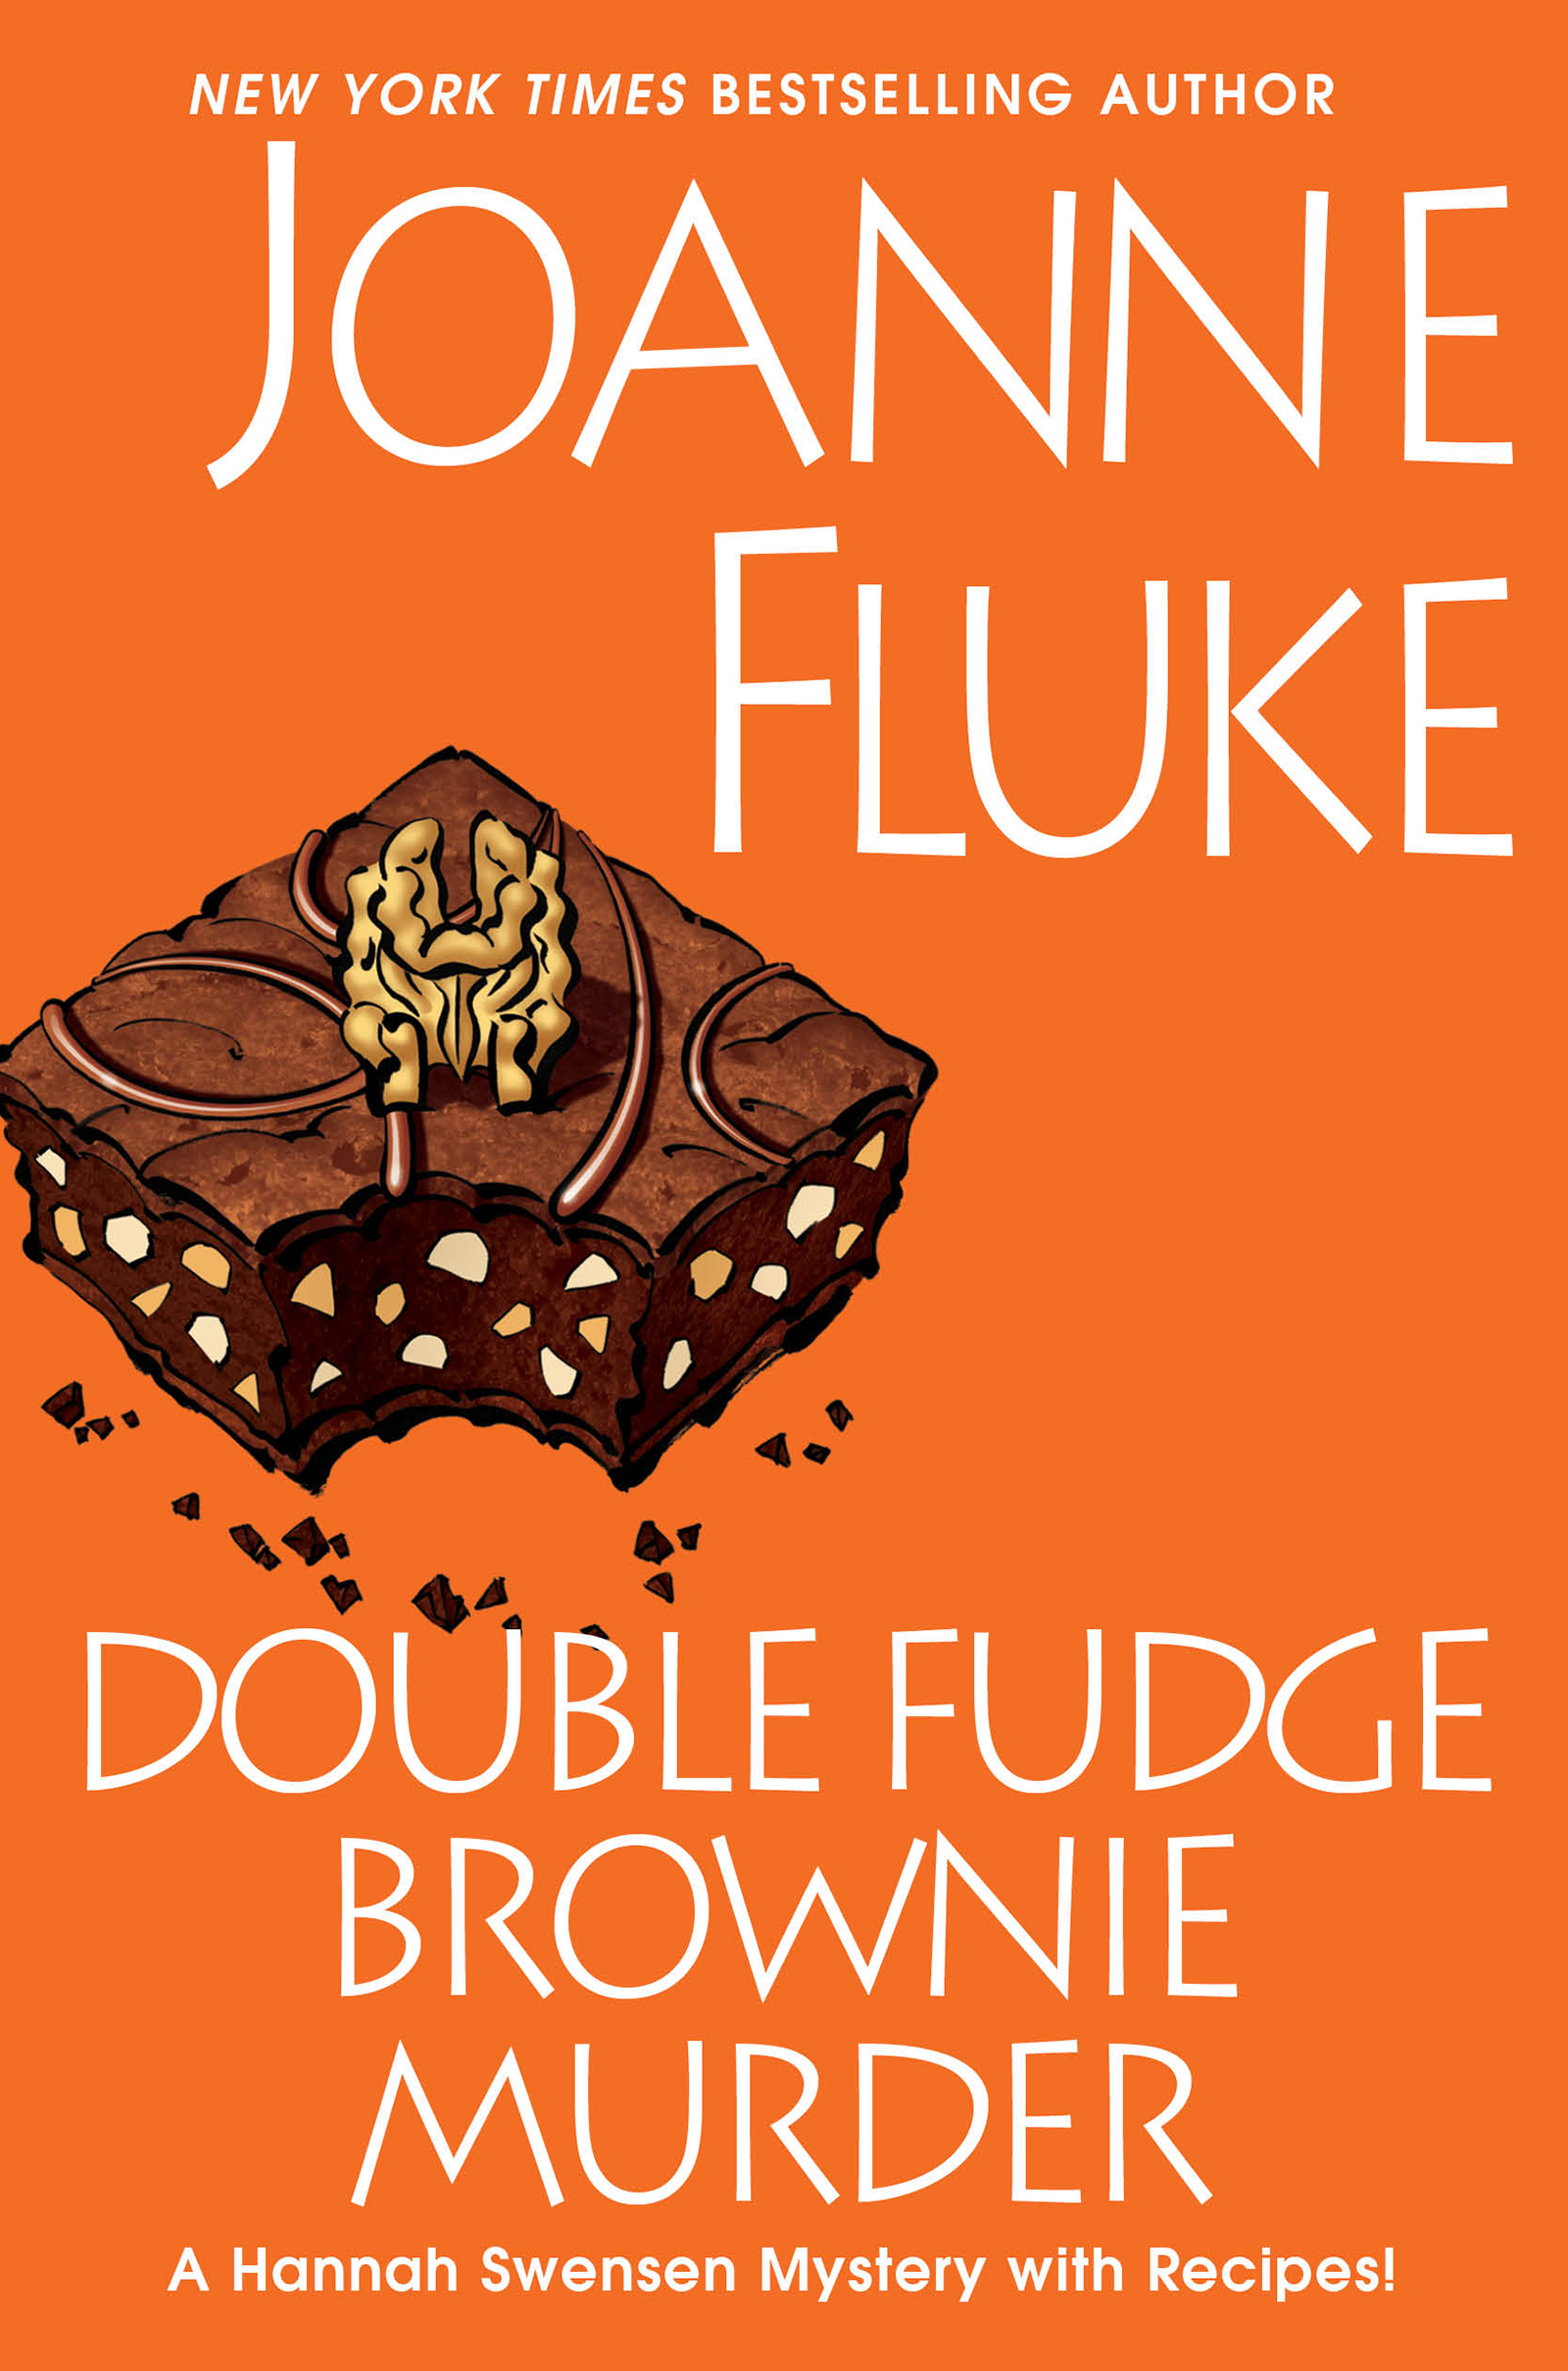 Double fudge brownie murder cover image